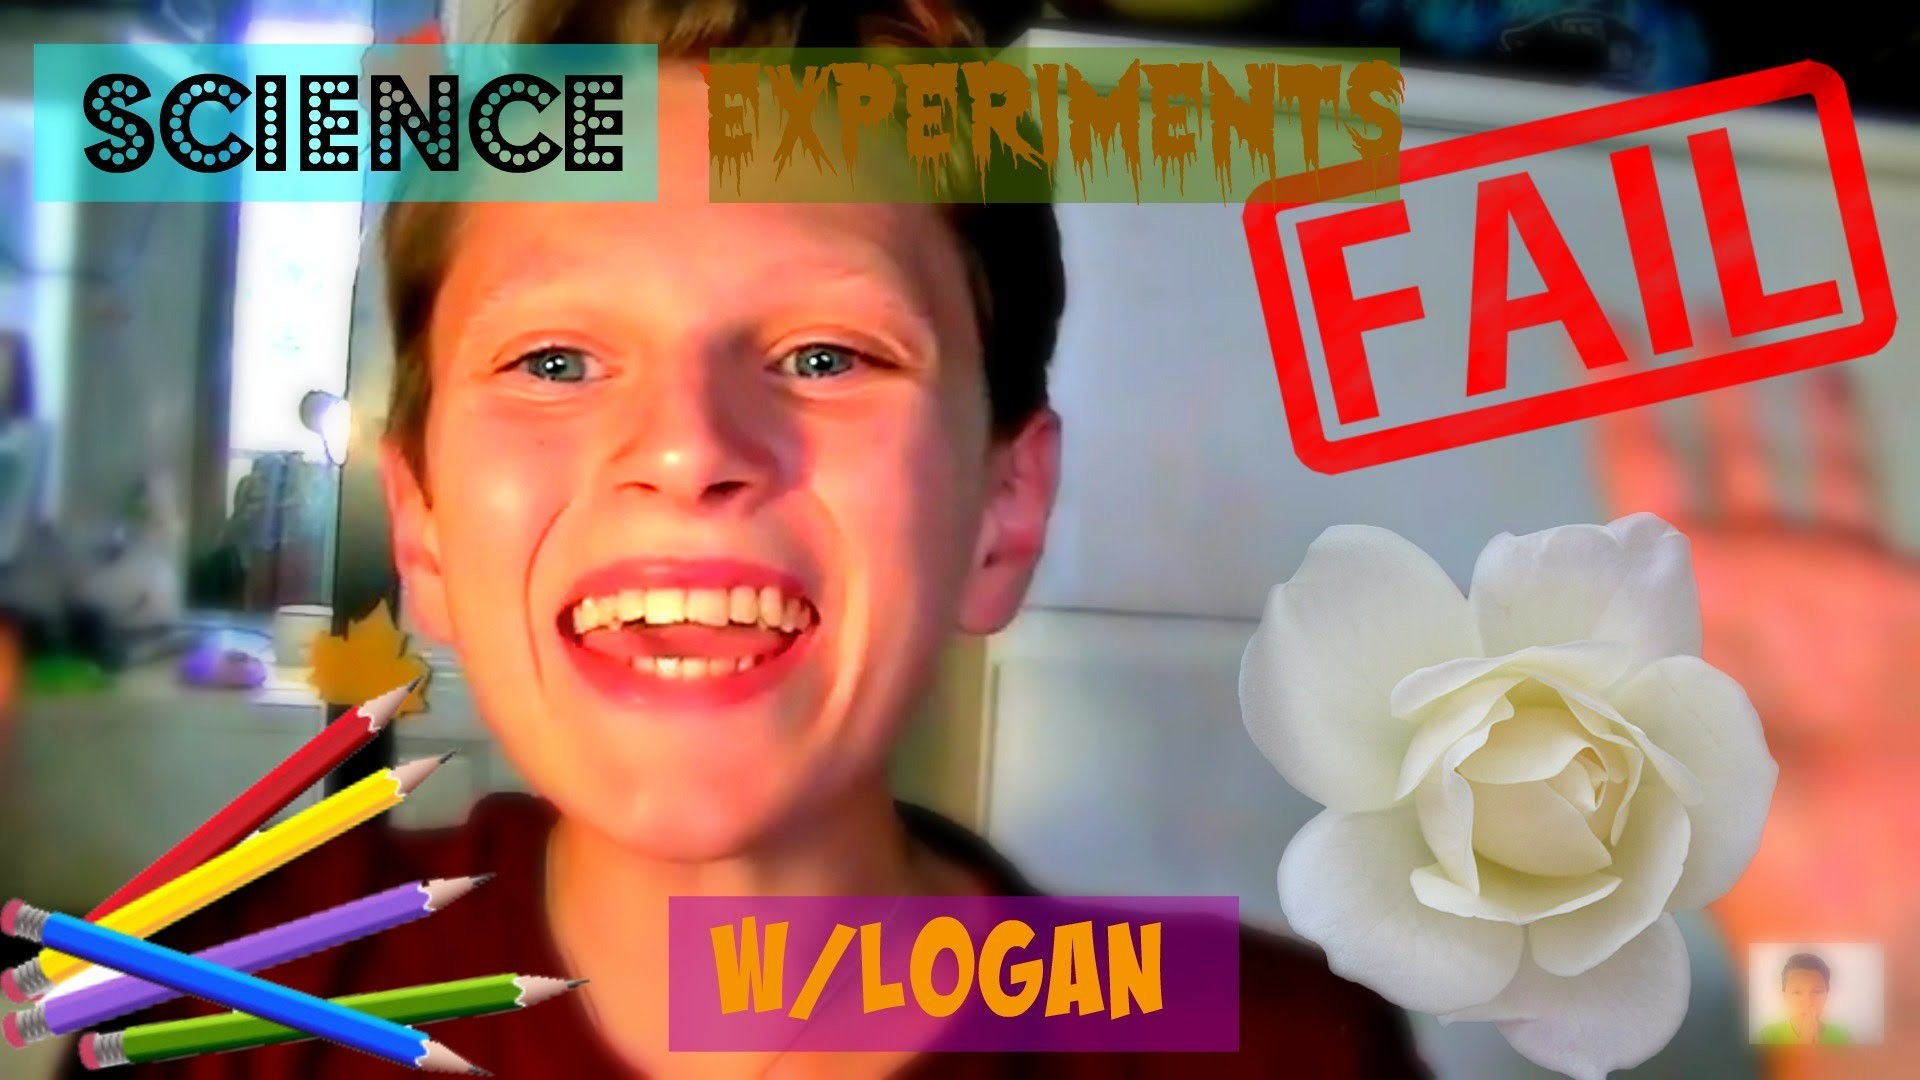 D.I.Y Science experiments W.logan